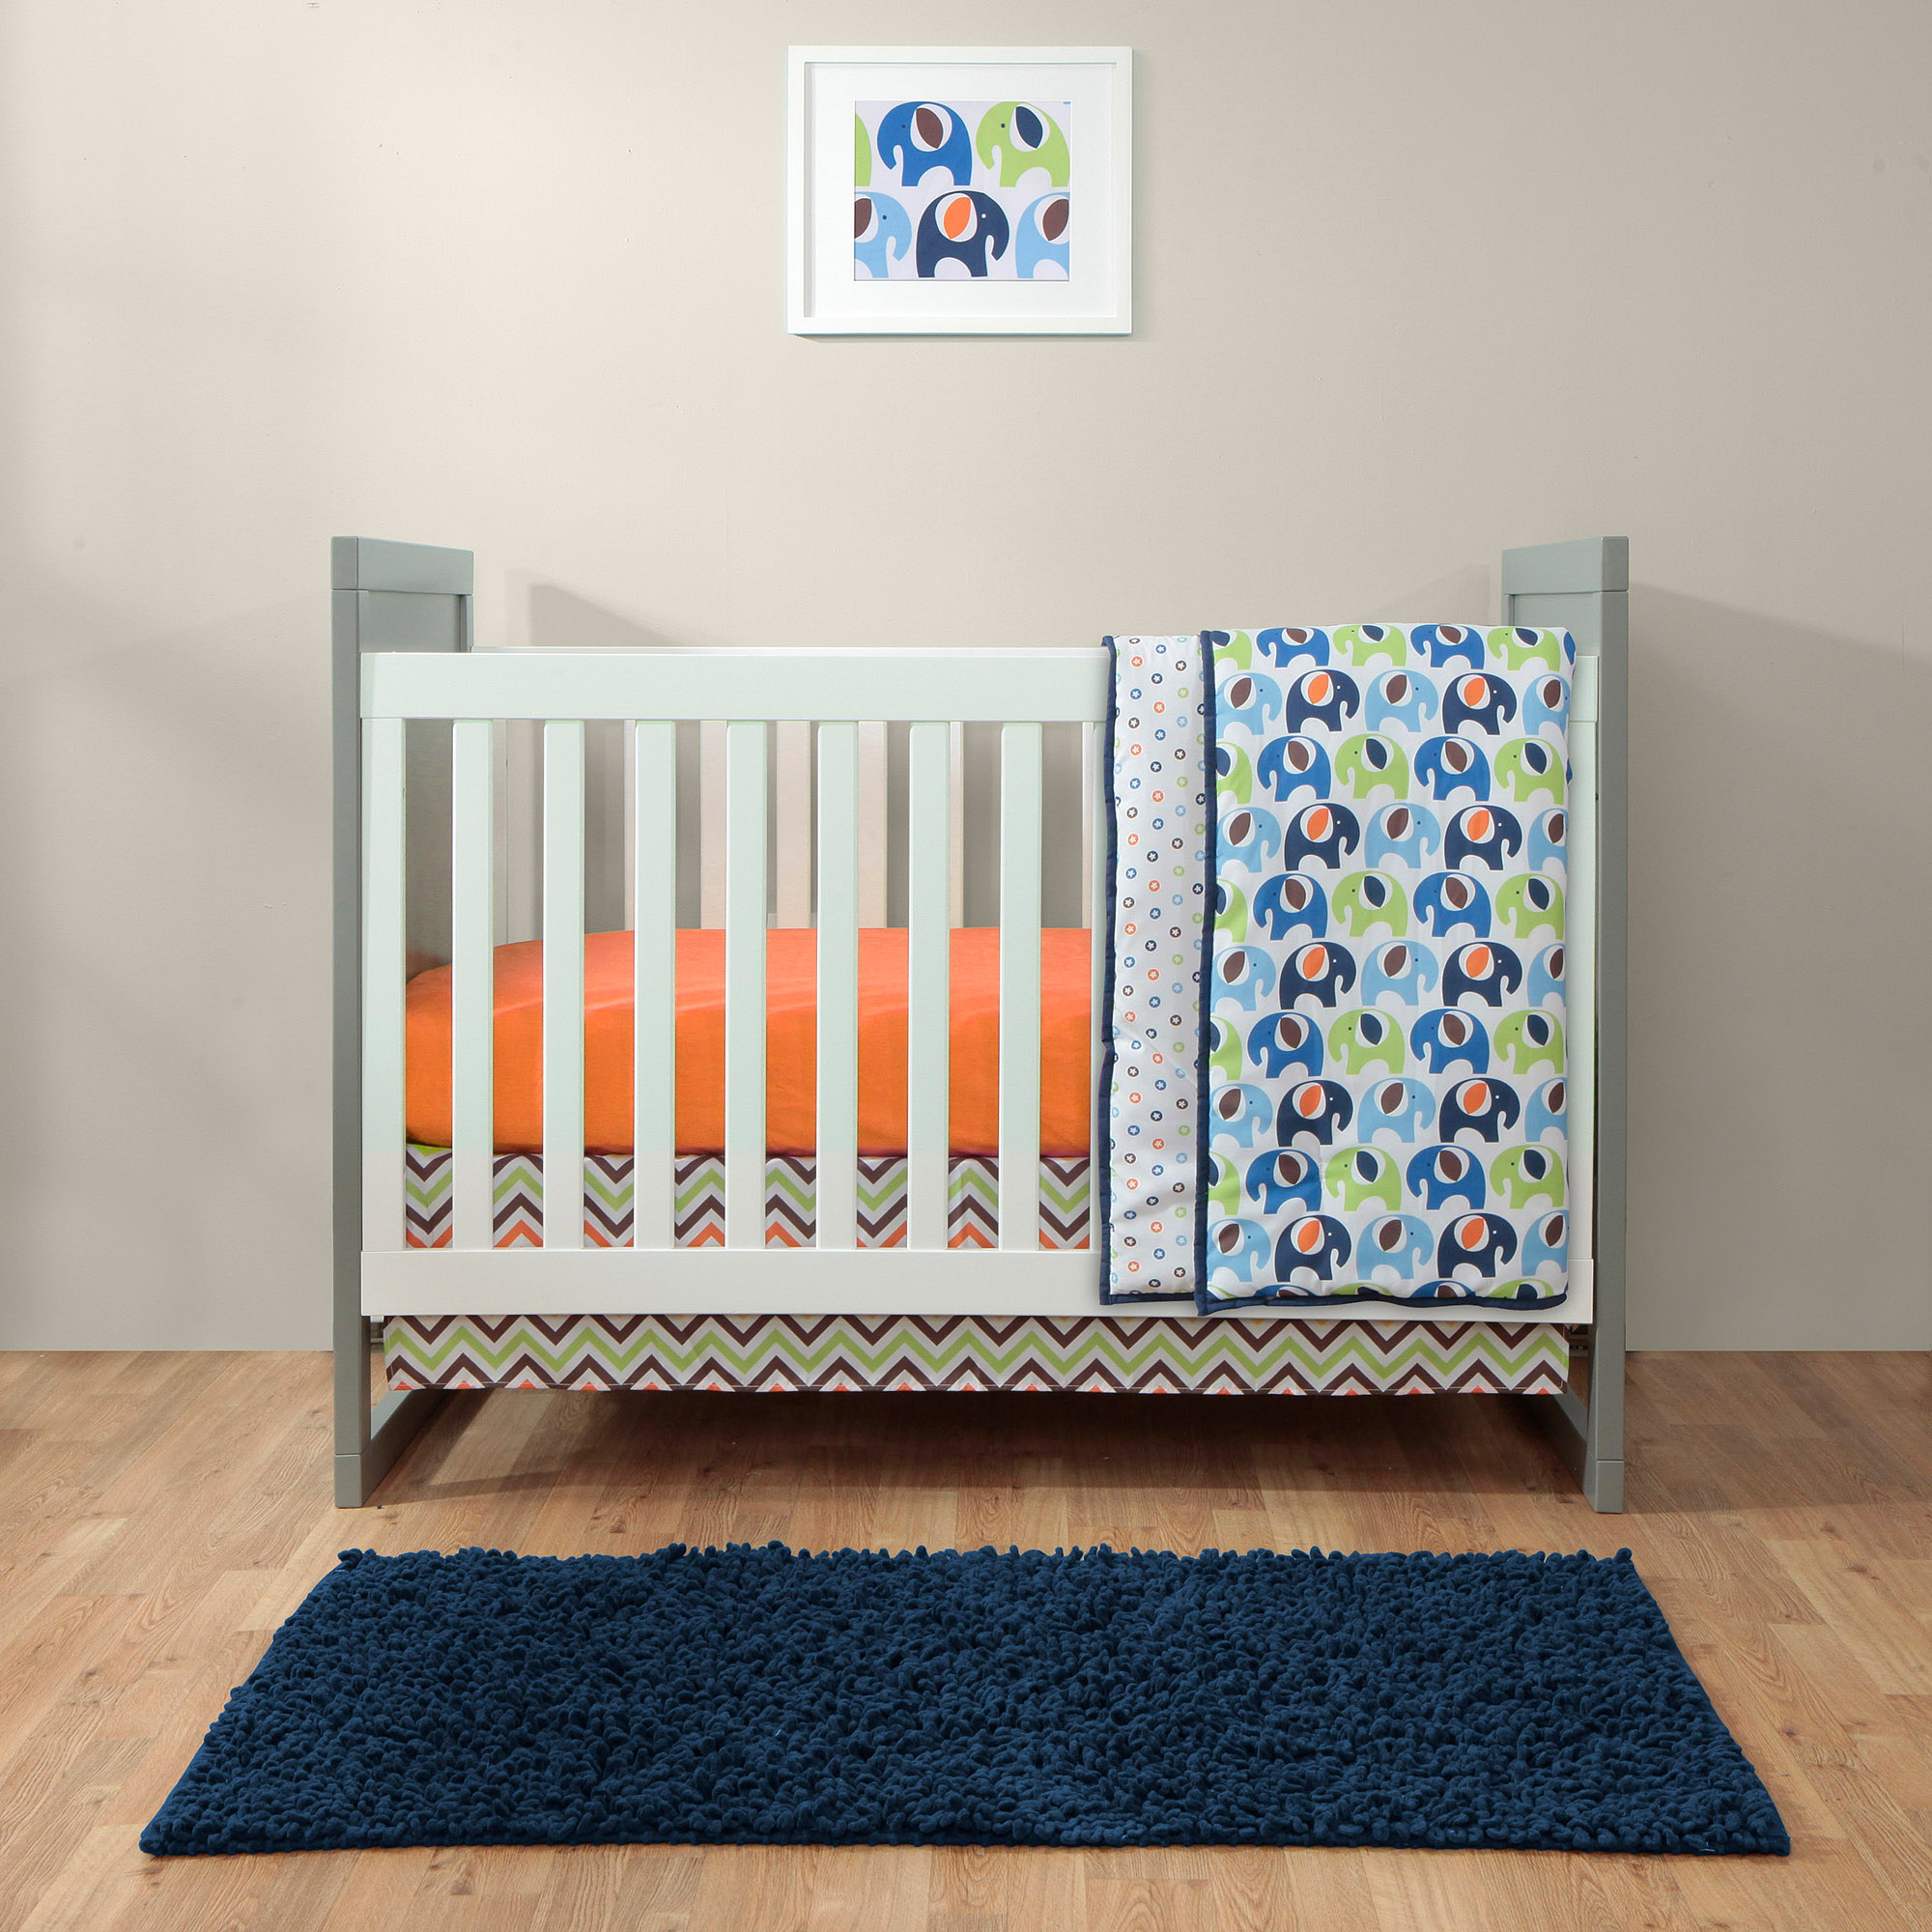 Letters crib bedding set 4 piece set contemporary baby bedding - Bananafish Official Site For Banana Fish Baby Bedding Nursery Banana Fish Bubble Gum 4 Piece Crib Set